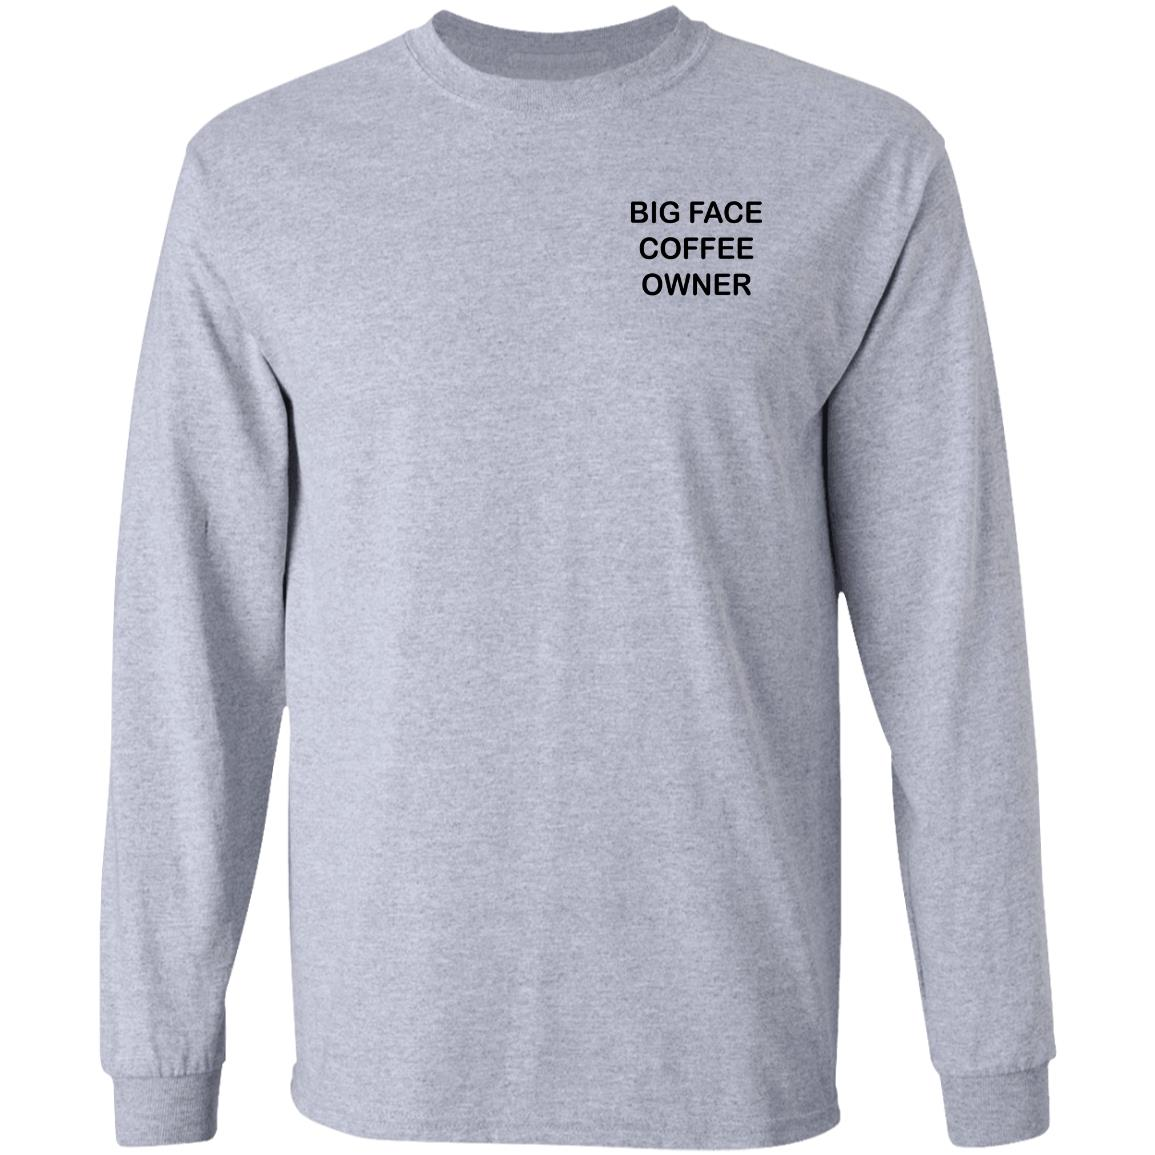 Jimmy Butler Big Face Coffee Owner Shirt - Cheeks Apparel